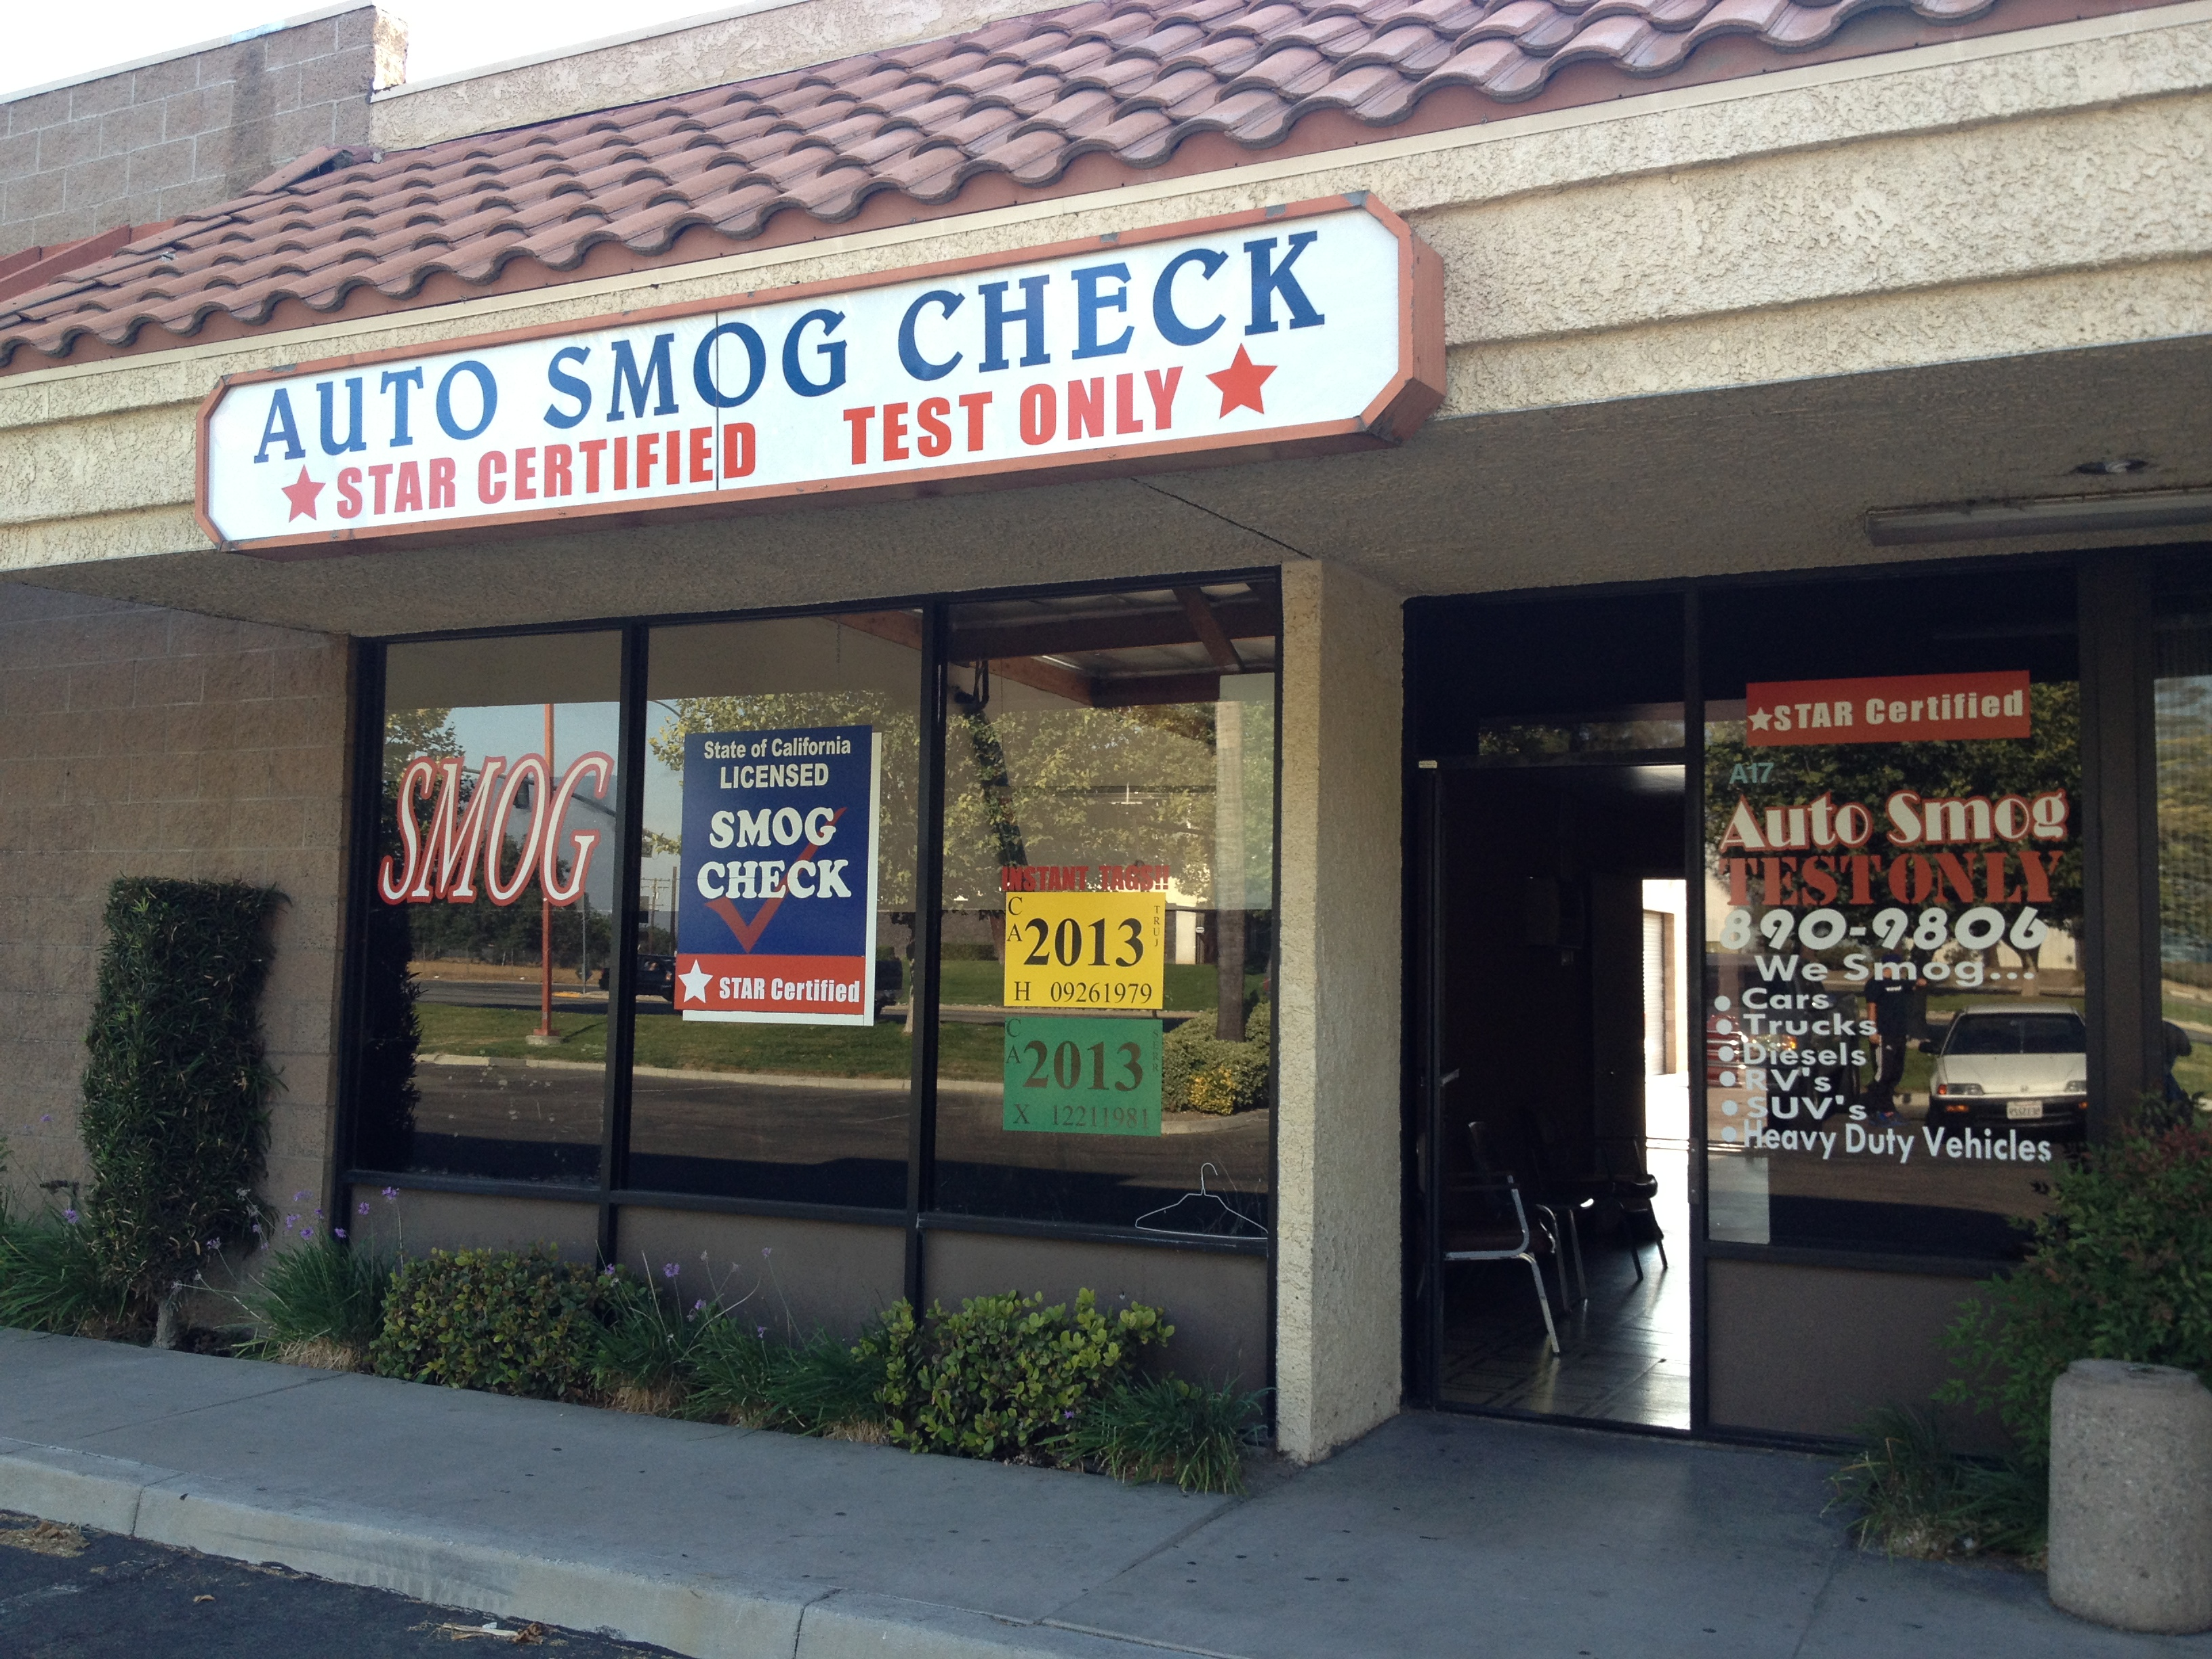 Auto smog check test only 738 s waterman ave a 17 san bernardino auto smog check test only 738 s waterman ave a 17 san bernardino ca automobile smog control inspections mapquest xflitez Gallery